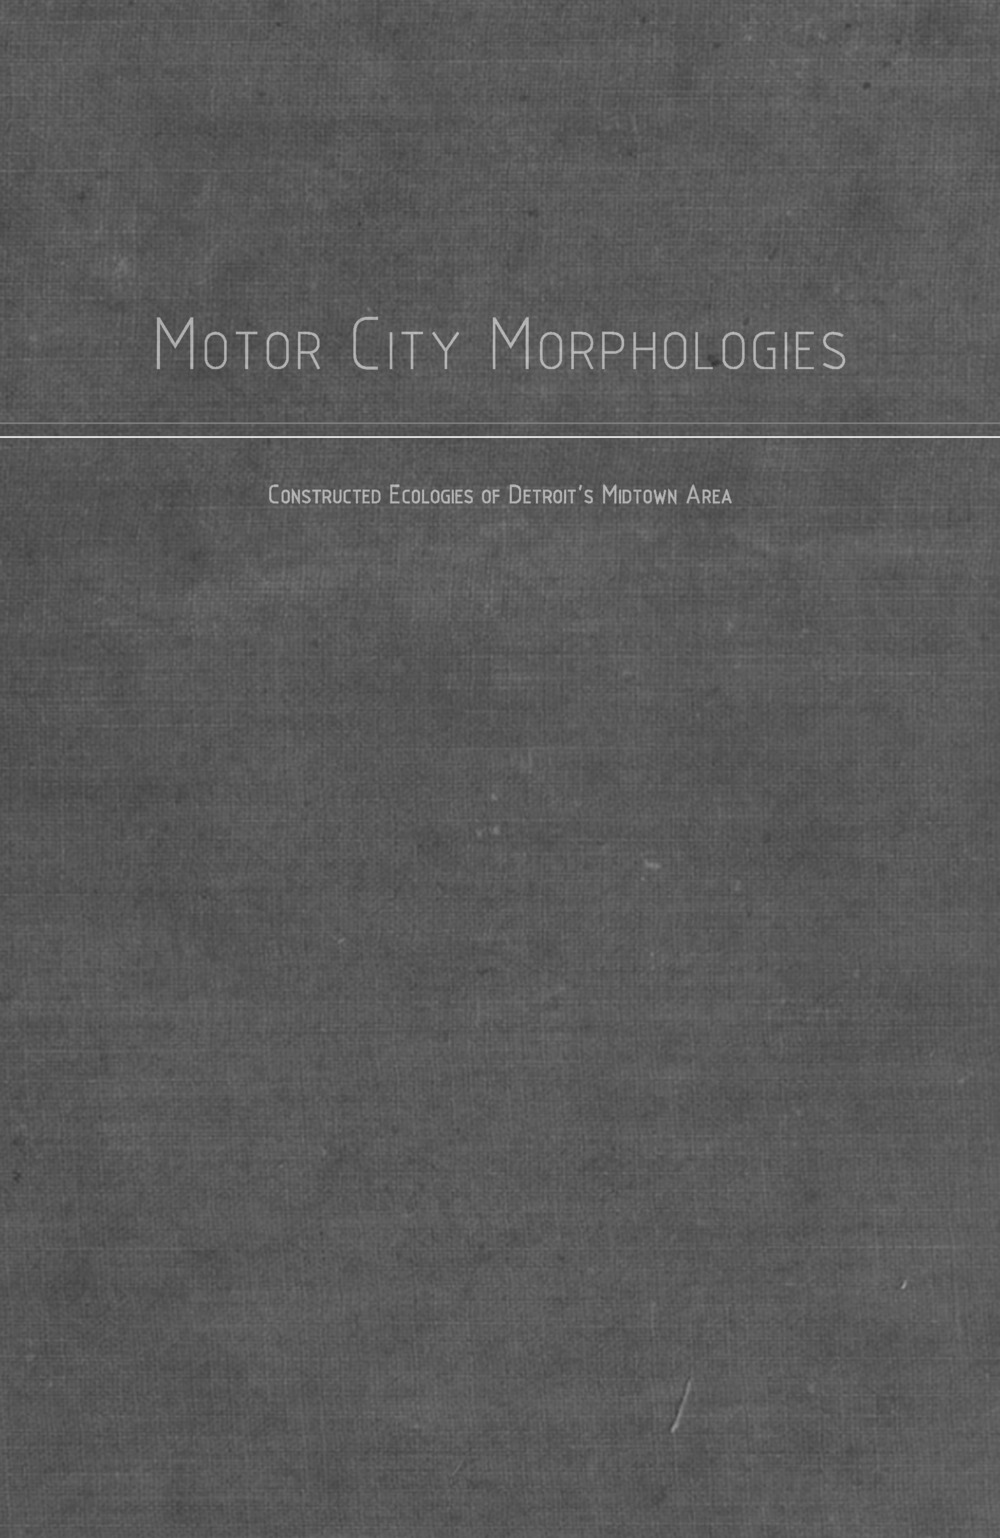 Motor City Morphologies: Constructed Ecologies of Detroit's Midtown Area